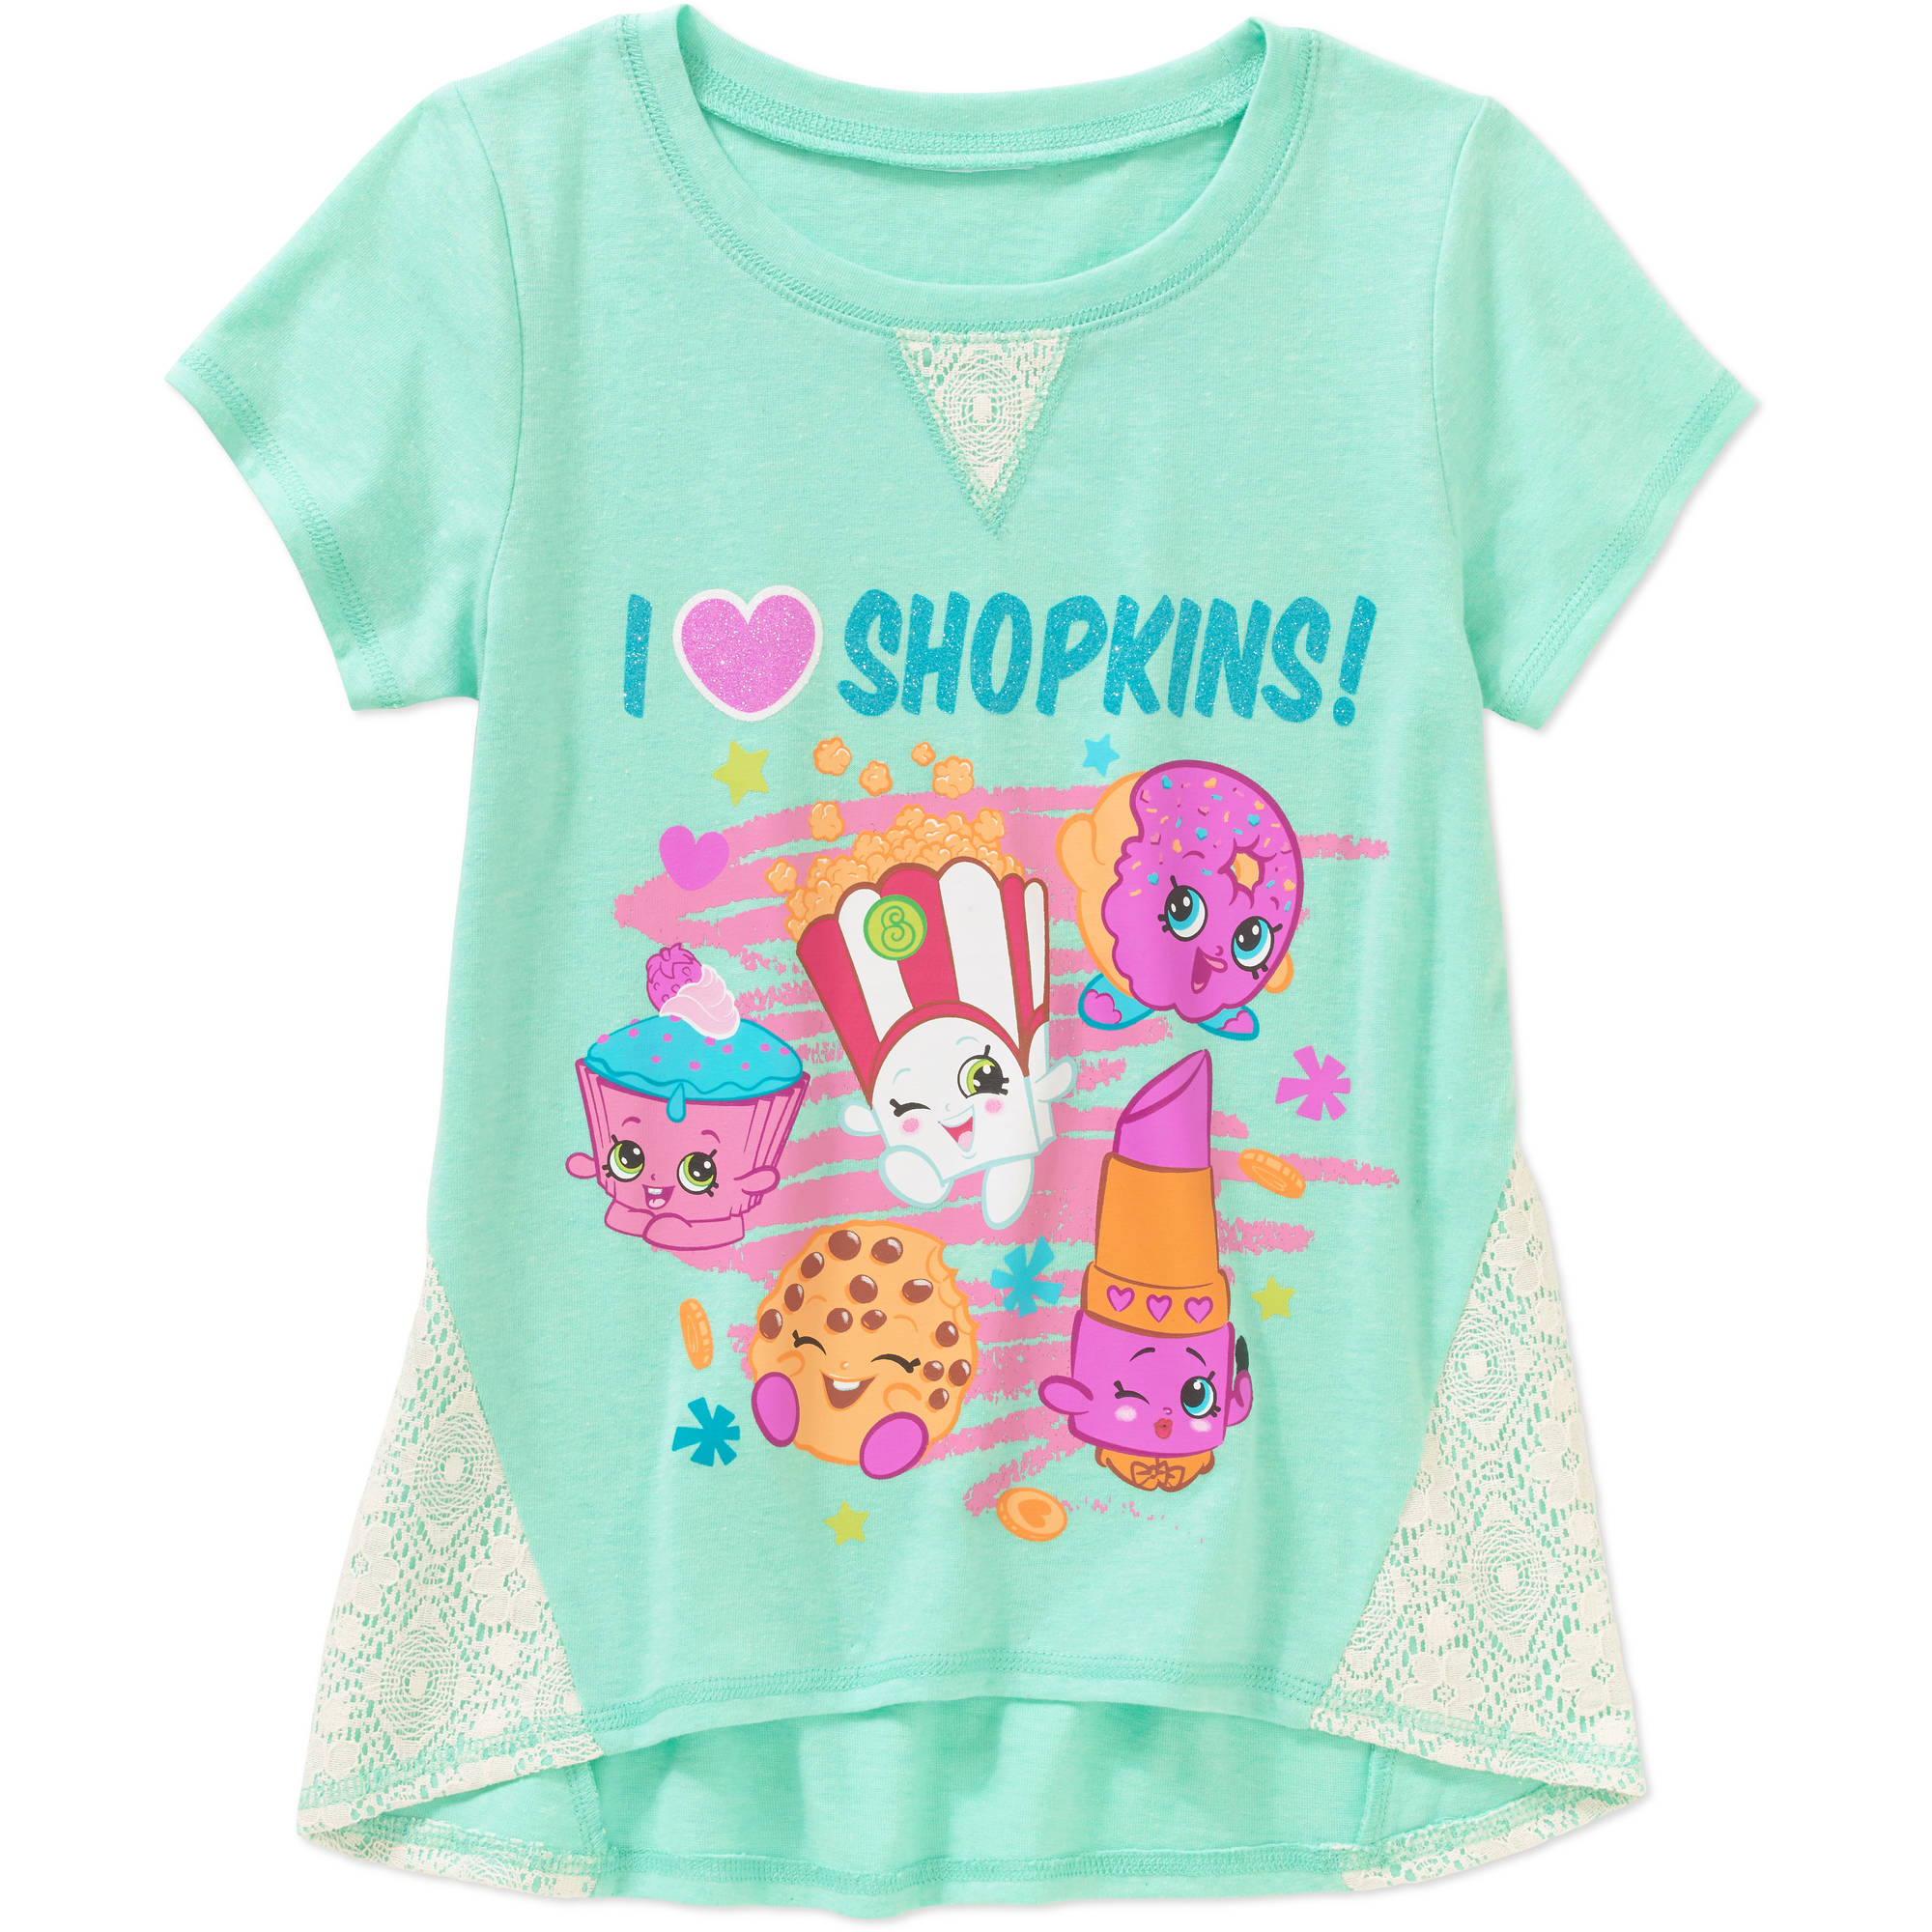 Shopkins Girls' I Heart Shopkins Crochet Panel Graphic Top